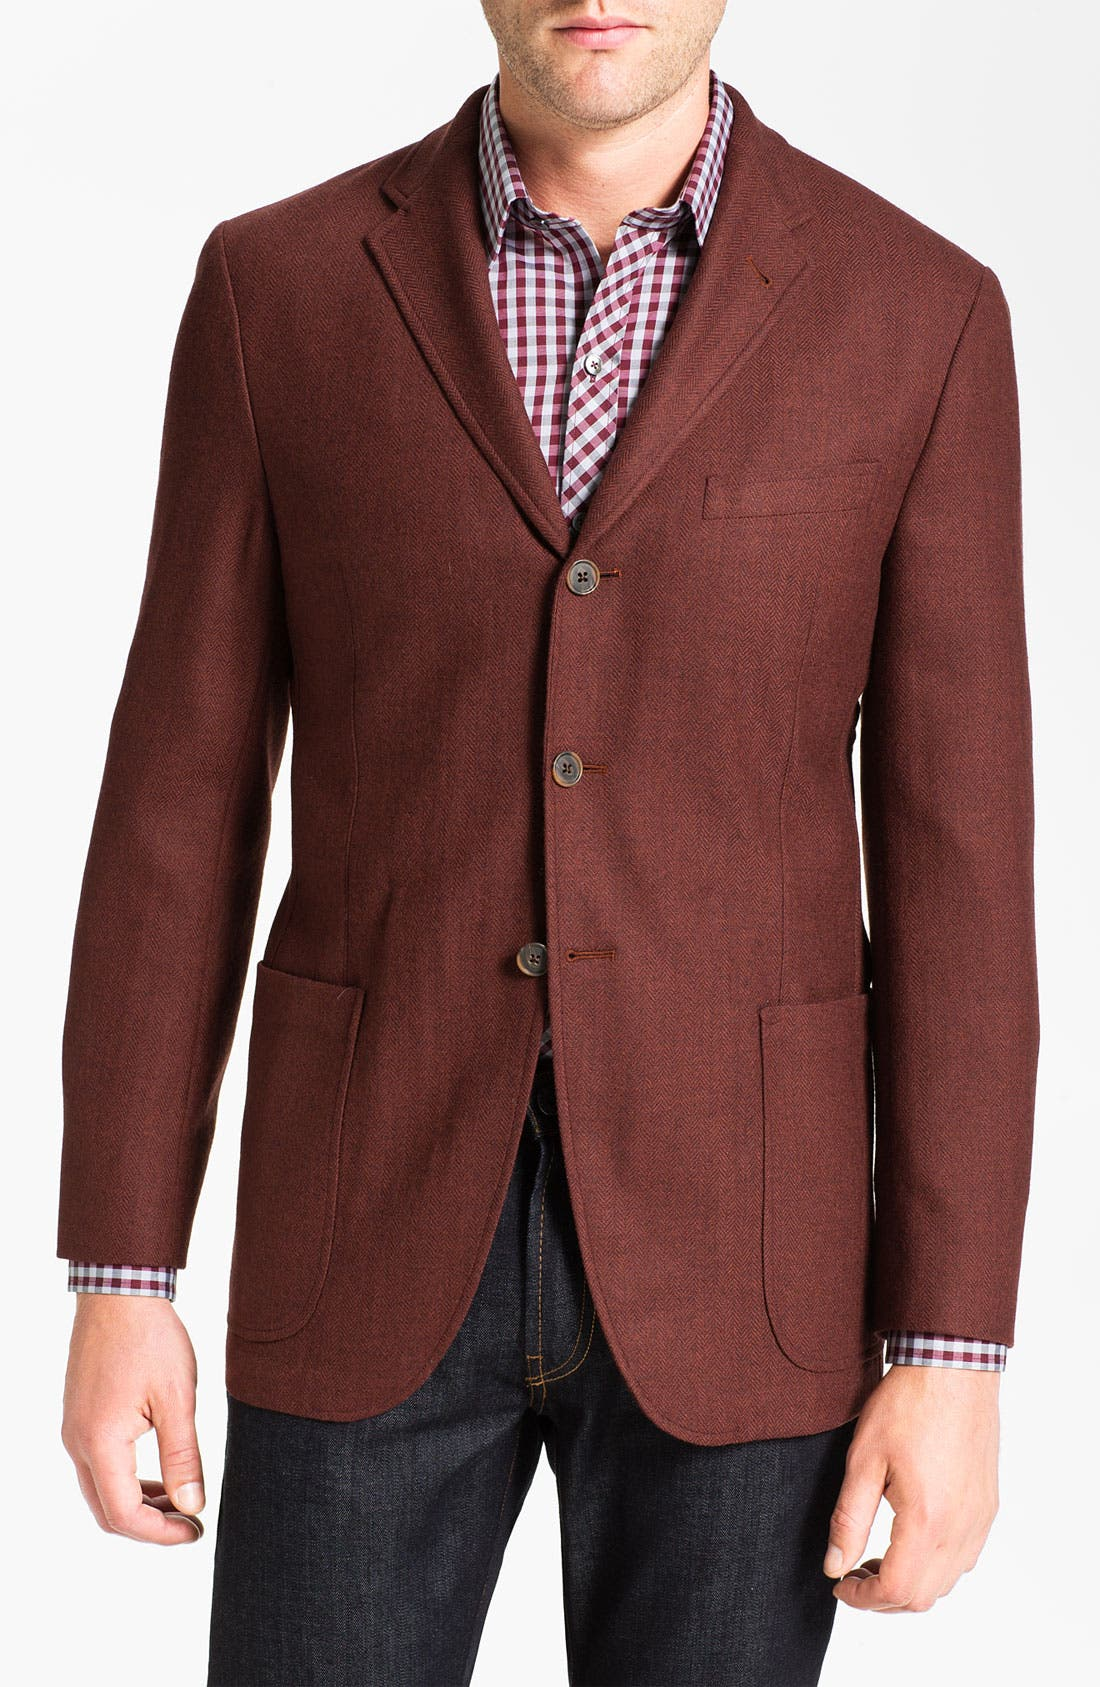 Alternate Image 1 Selected - Joseph Abboud Three Button Sportcoat